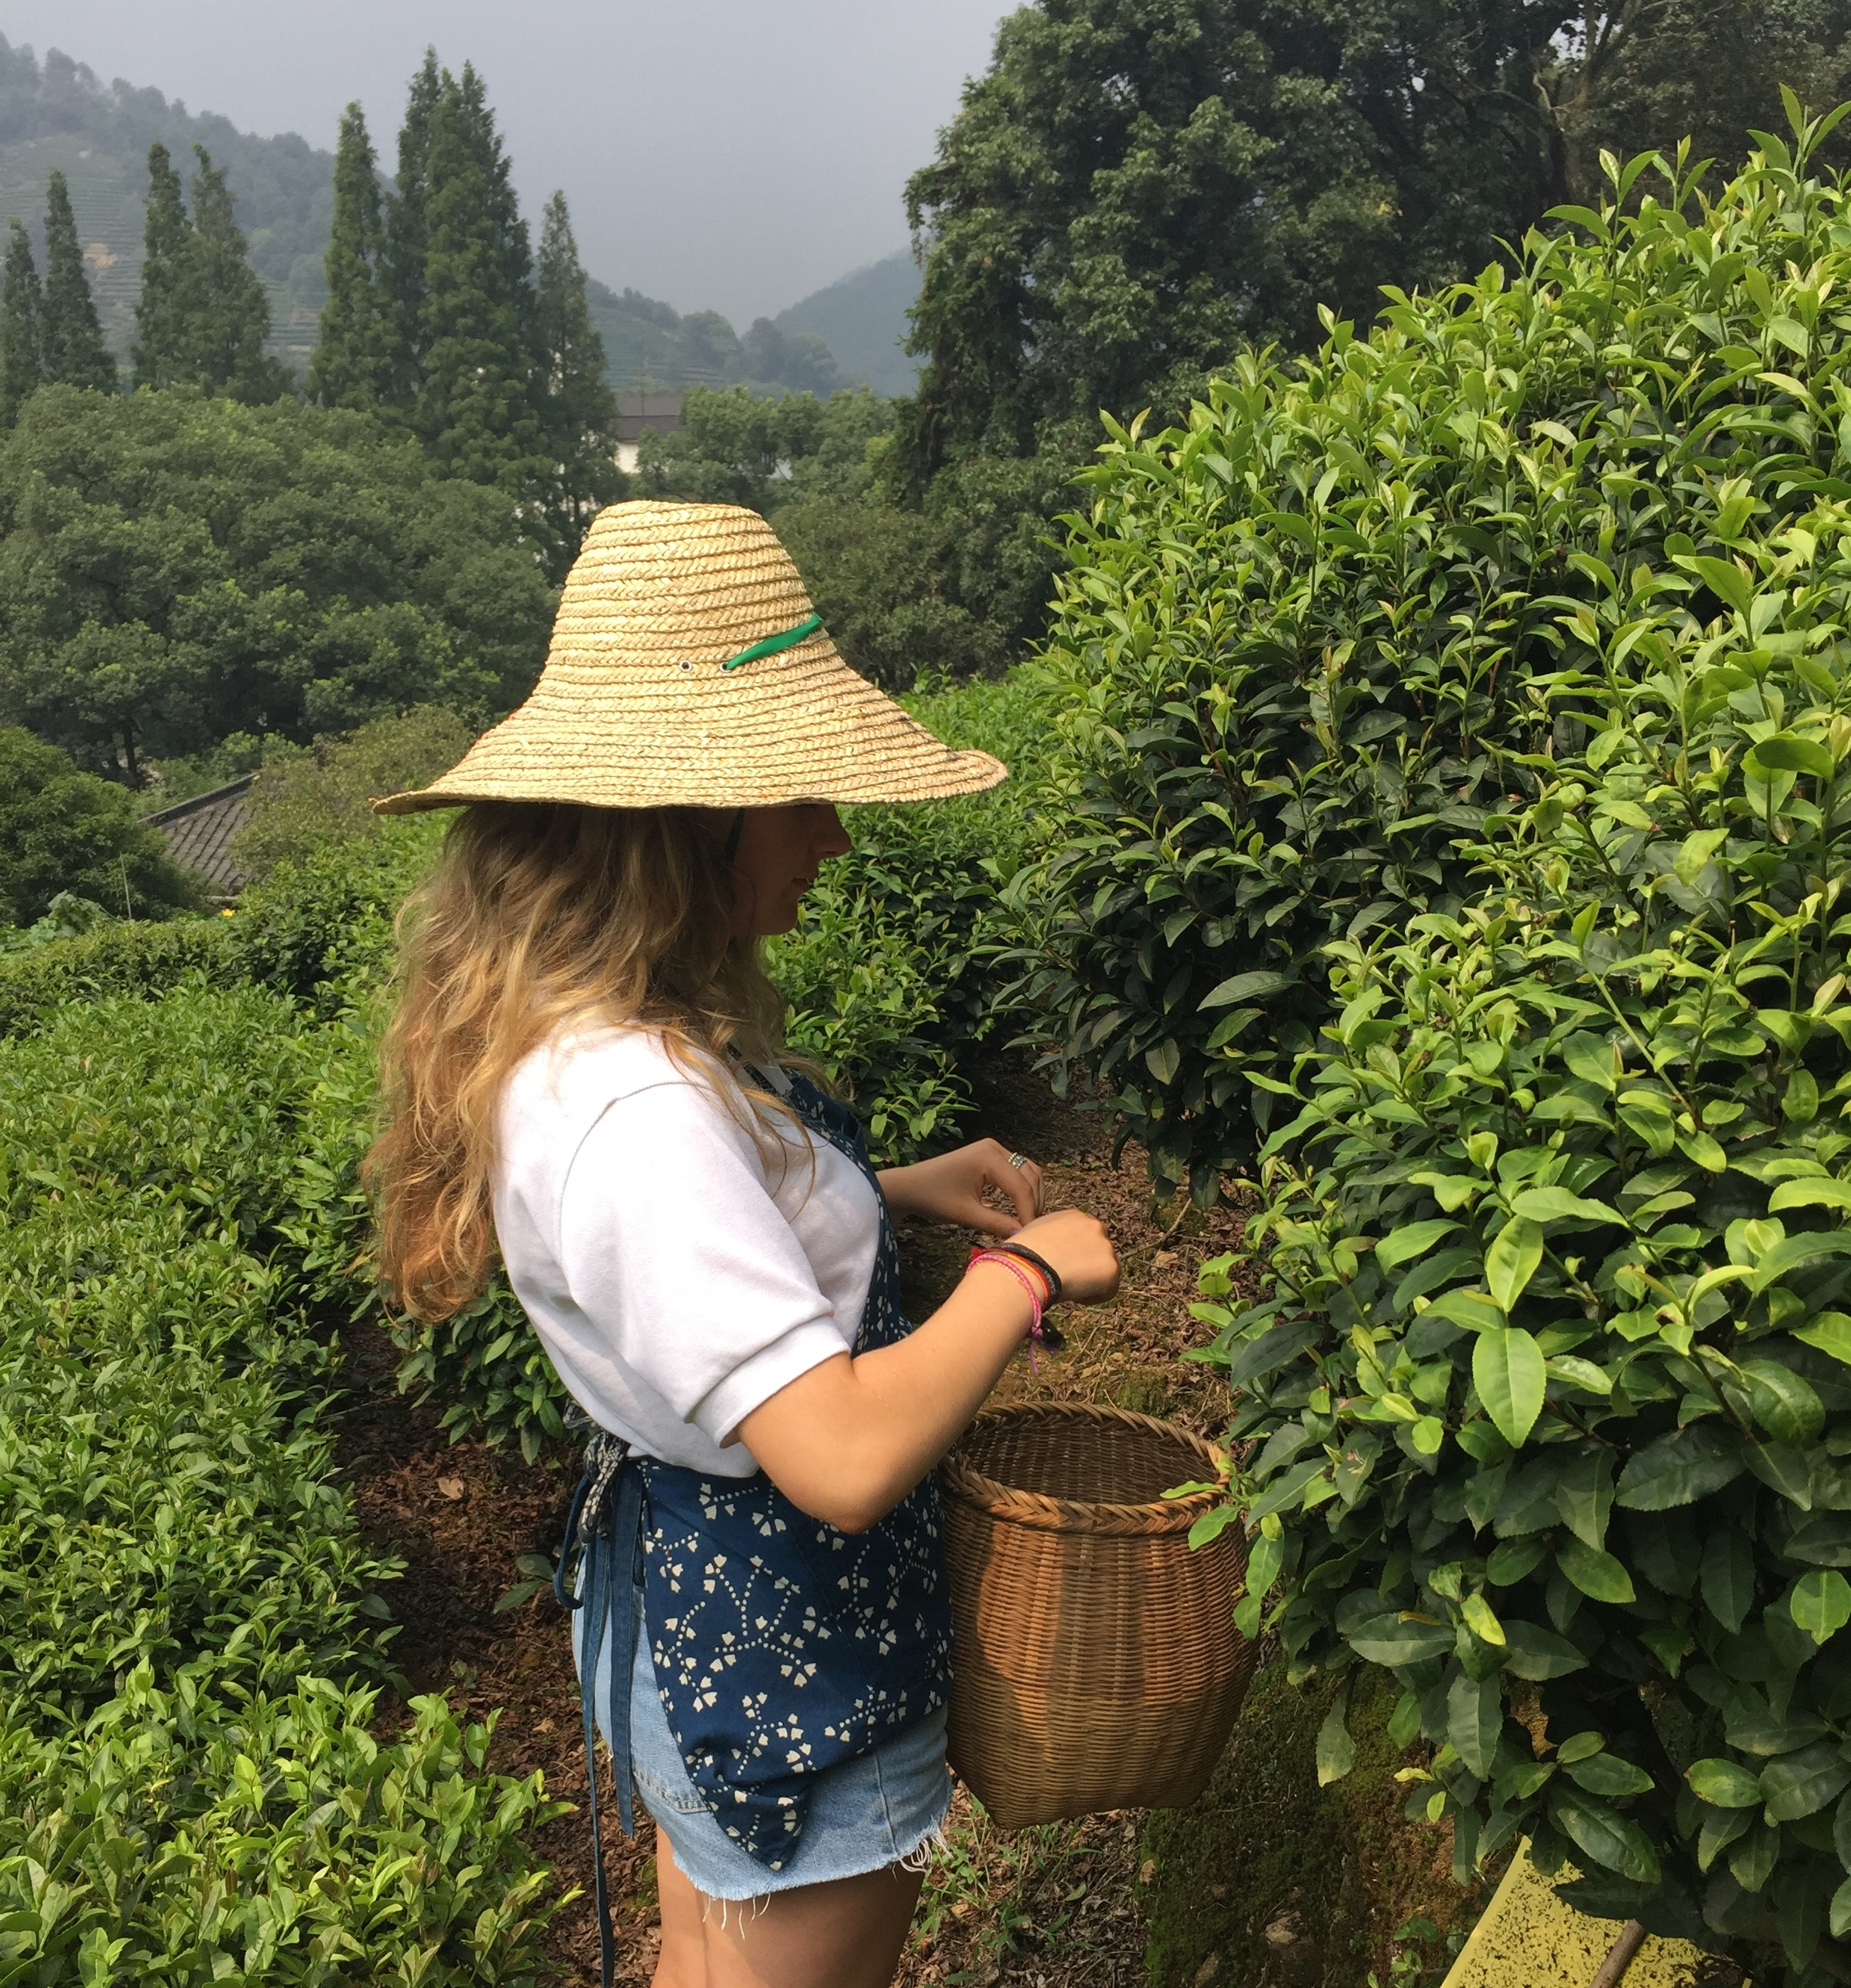 Katy picking tea leaves at plantation in China, after a business trip there with her family